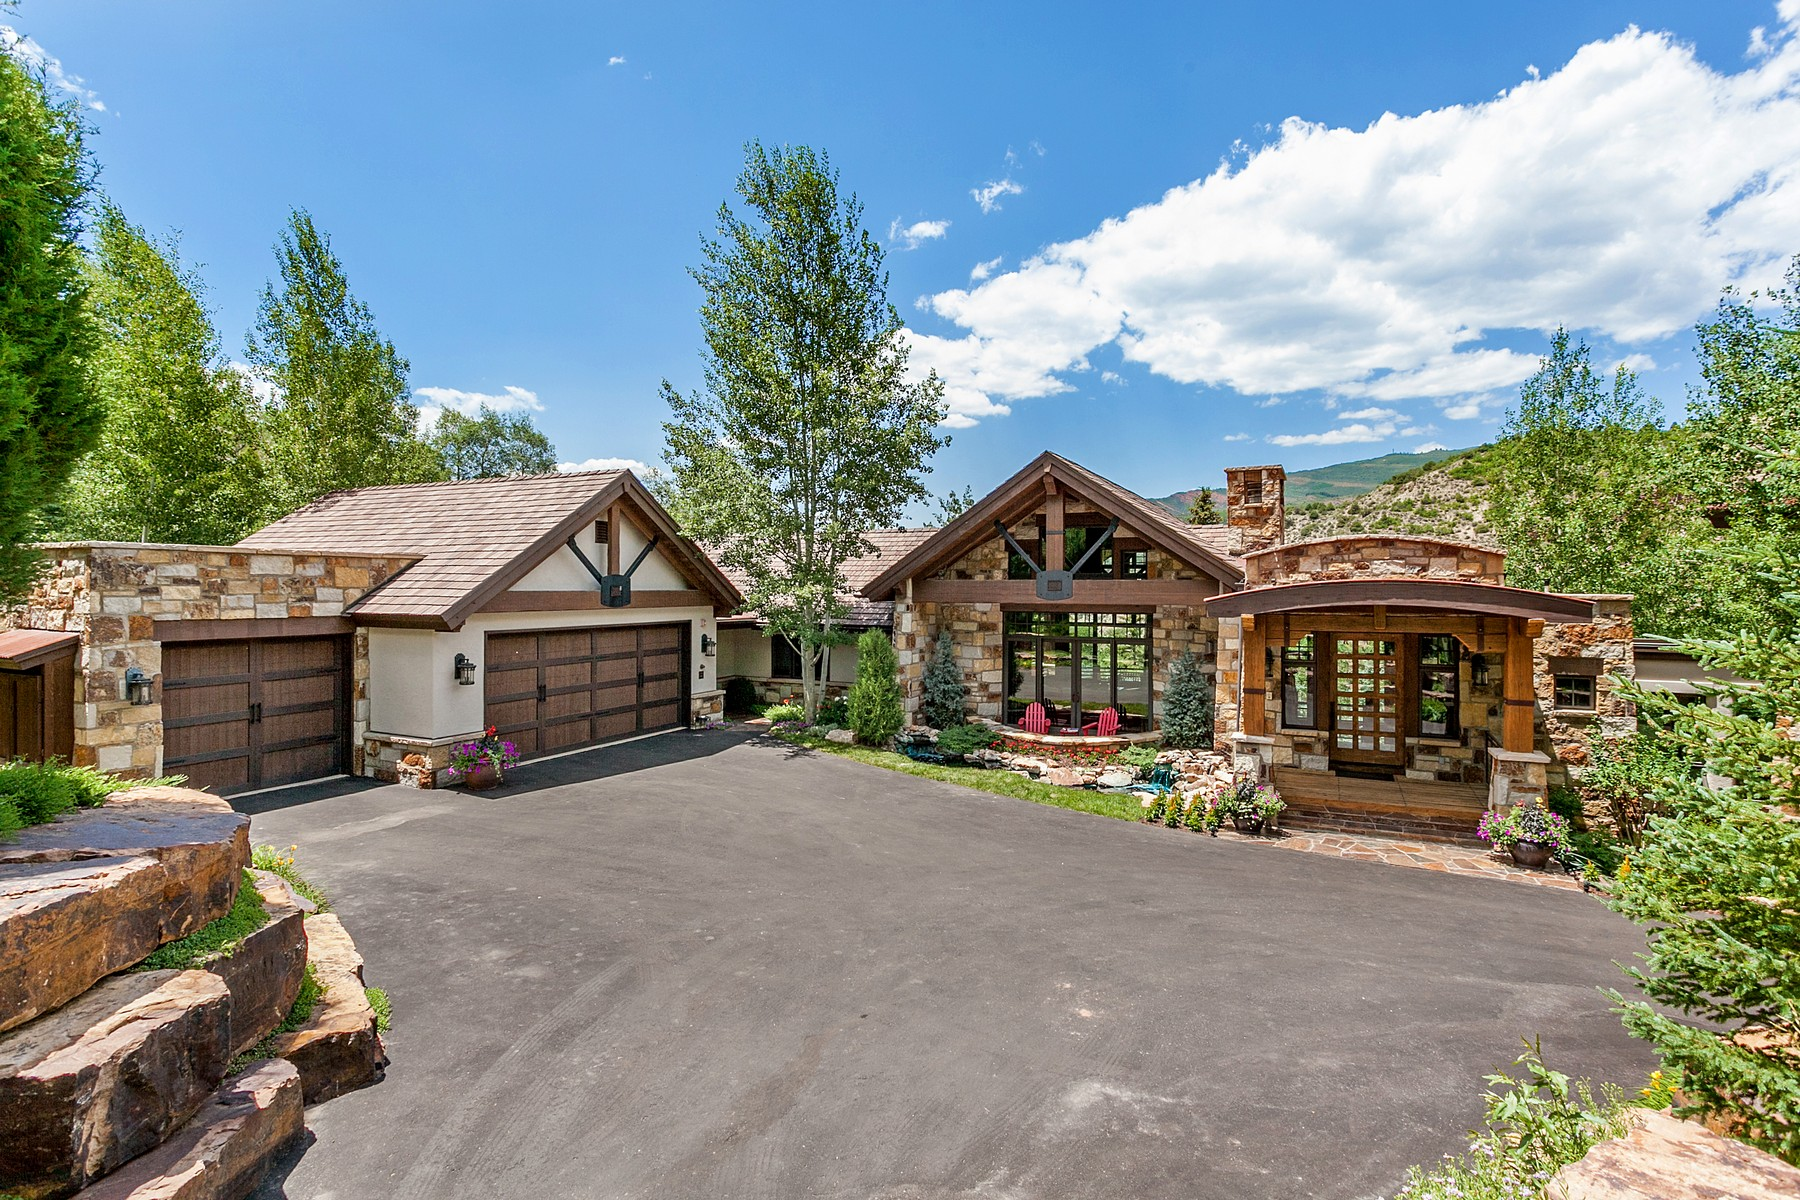 Single Family Home for Active at Magnificent, Creative & Luxurious Custom Home in Gated Community 605 Andorra Road Edwards, Colorado 81632 United States